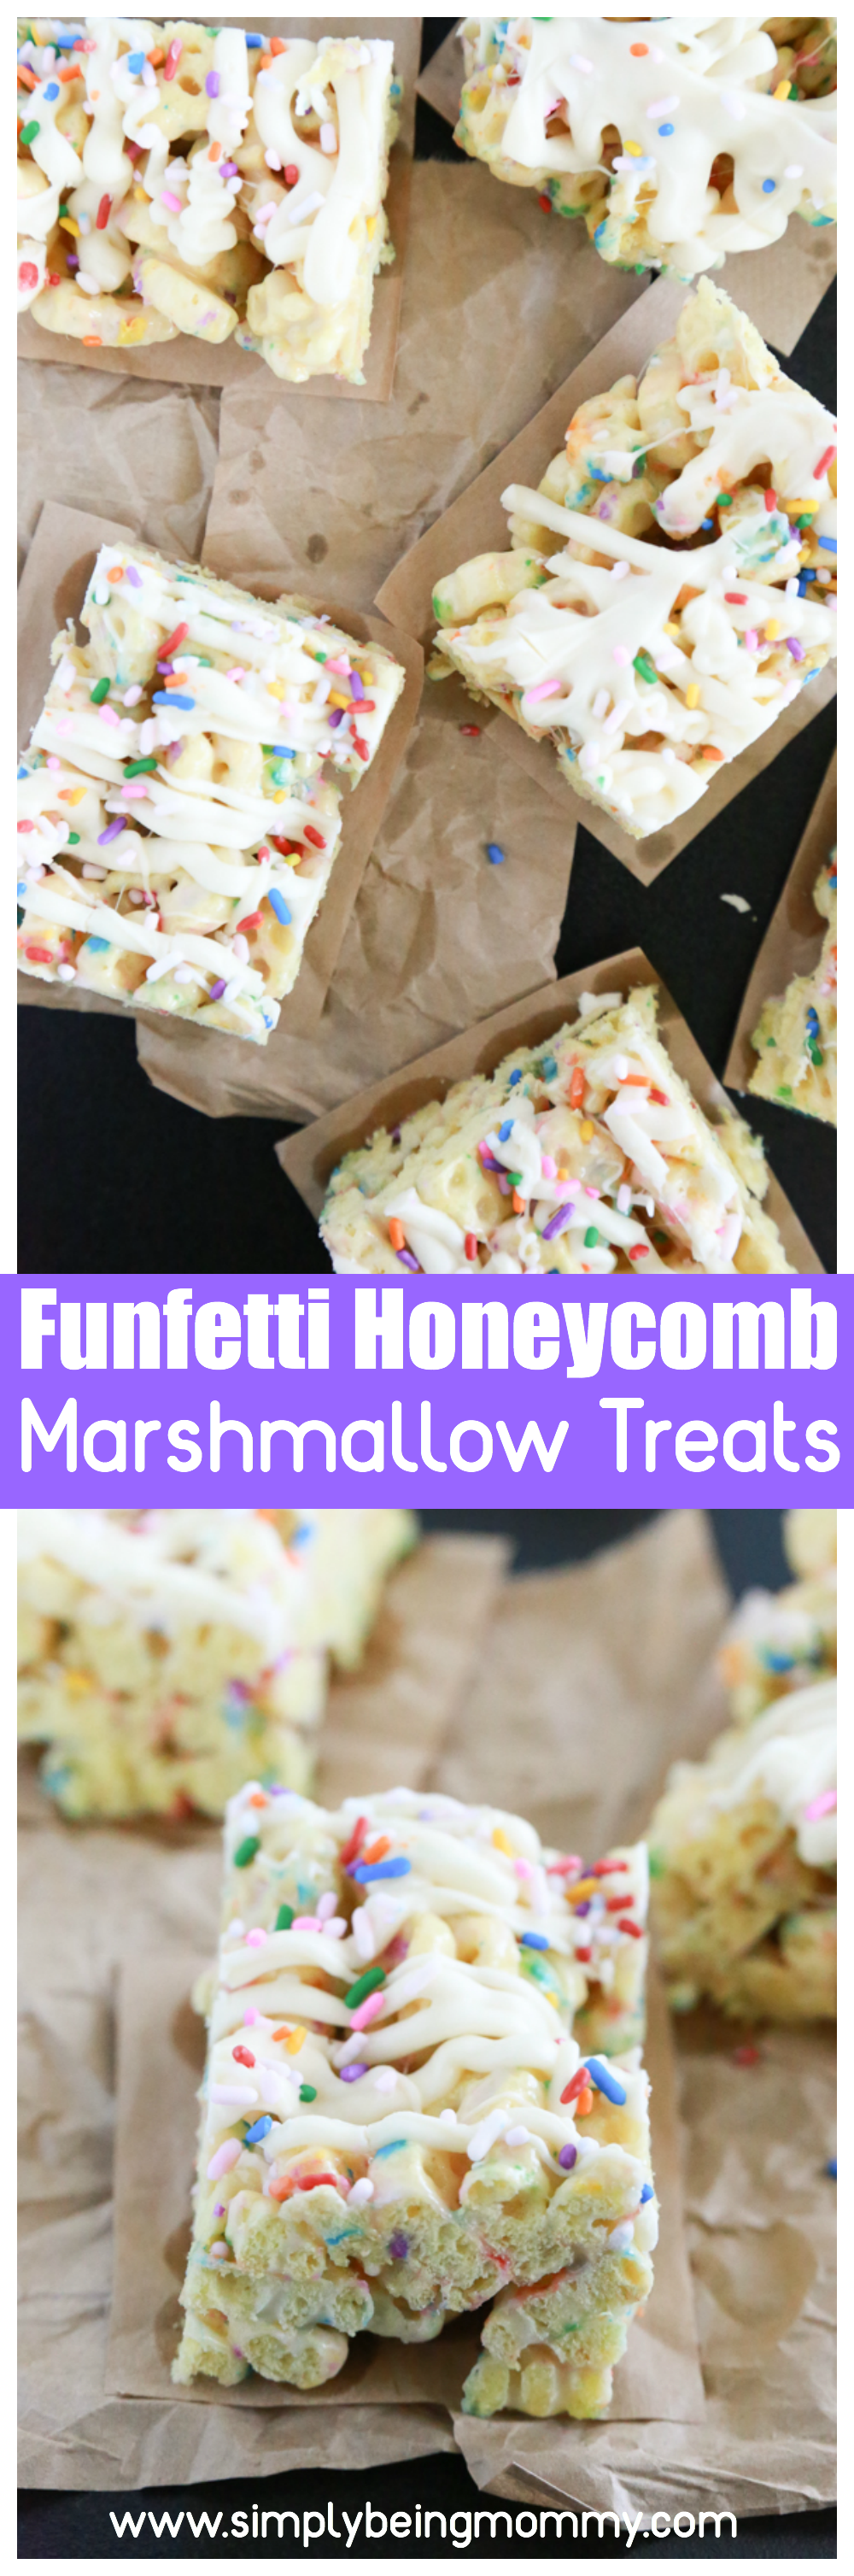 Sprinkles make everything better. Make these delicious Funfetti Honeycomb Marshmallow Treats for a celebration or just because.